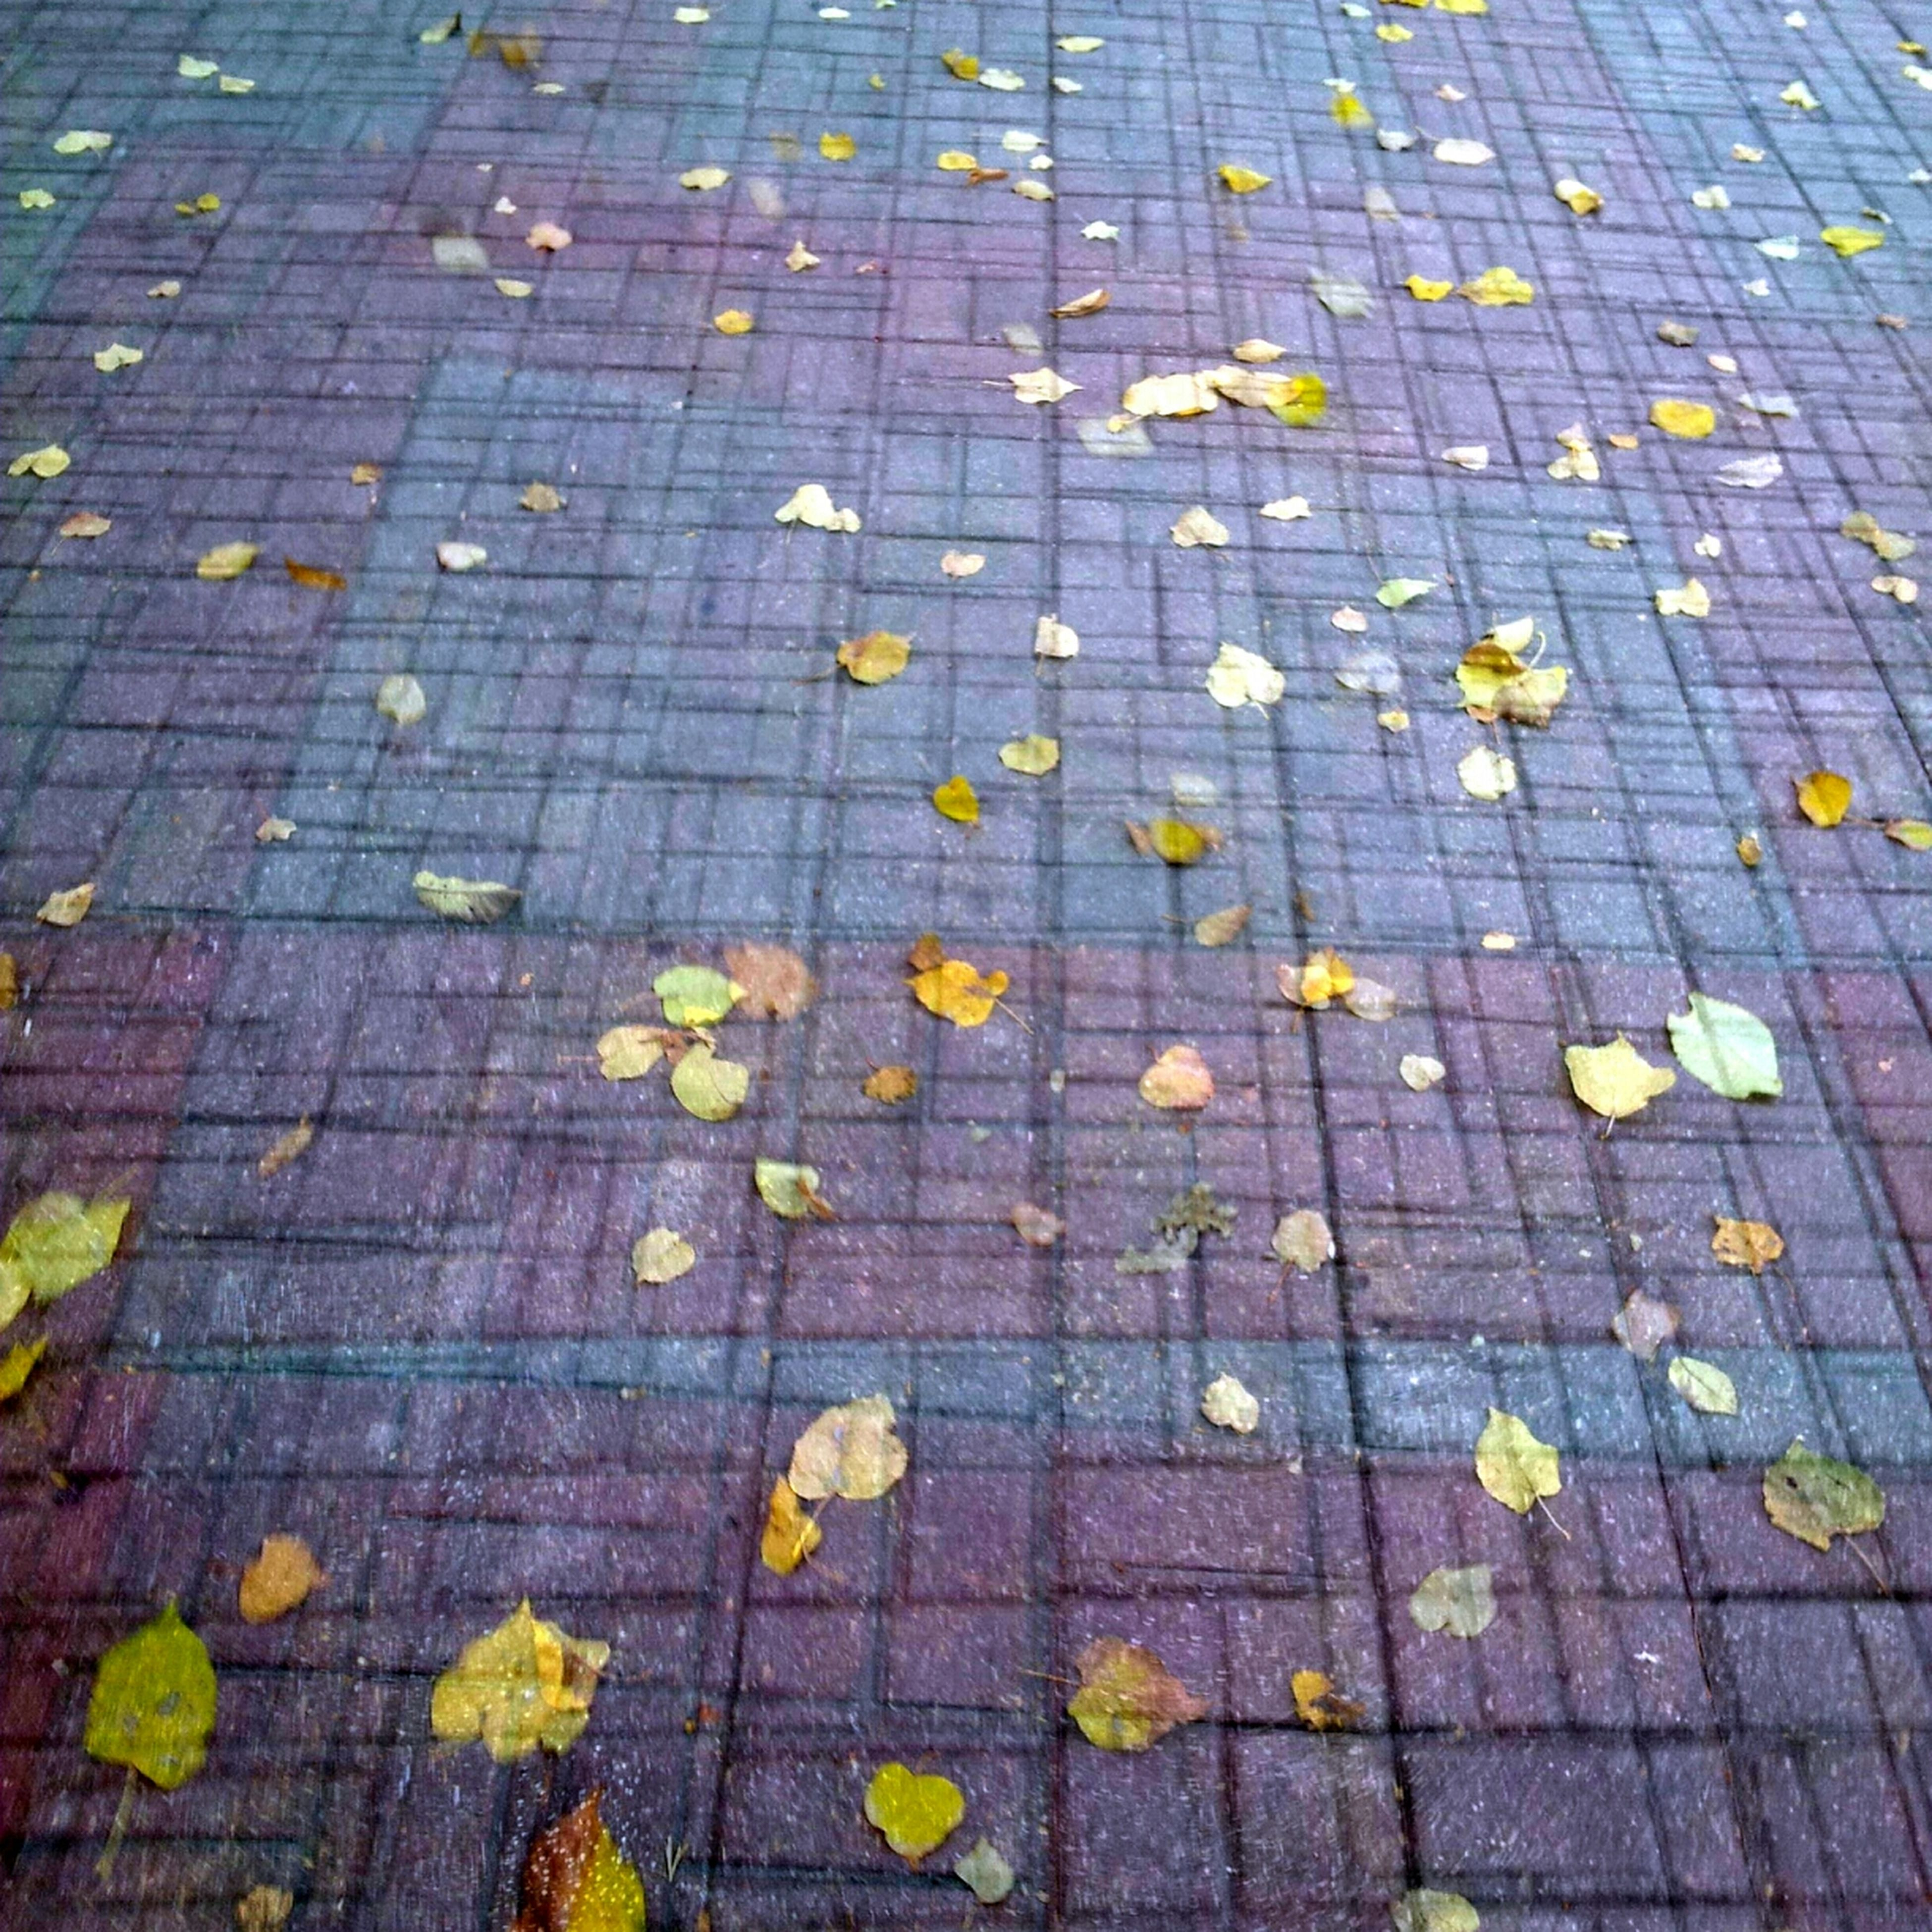 high angle view, autumn, leaf, full frame, yellow, fallen, cobblestone, street, textured, backgrounds, pattern, change, outdoors, dry, footpath, day, paving stone, season, sidewalk, nature